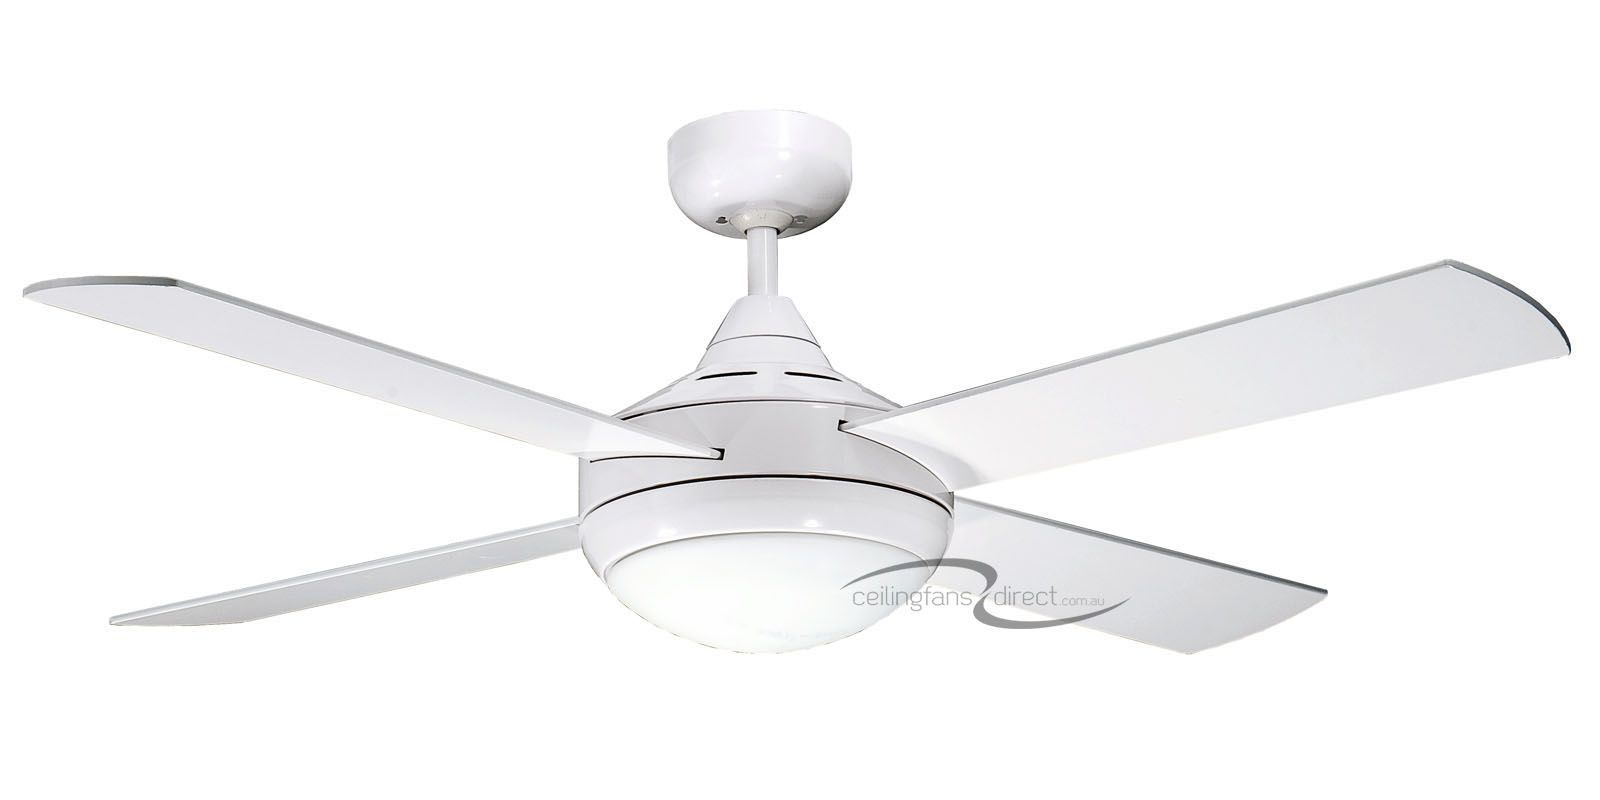 Inspiration about Unbelievable Outdoor Ceiling Fan With Light And Remote Control Intended For Outdoor Ceiling Fans With Remote Control Lights (#1 of 15)